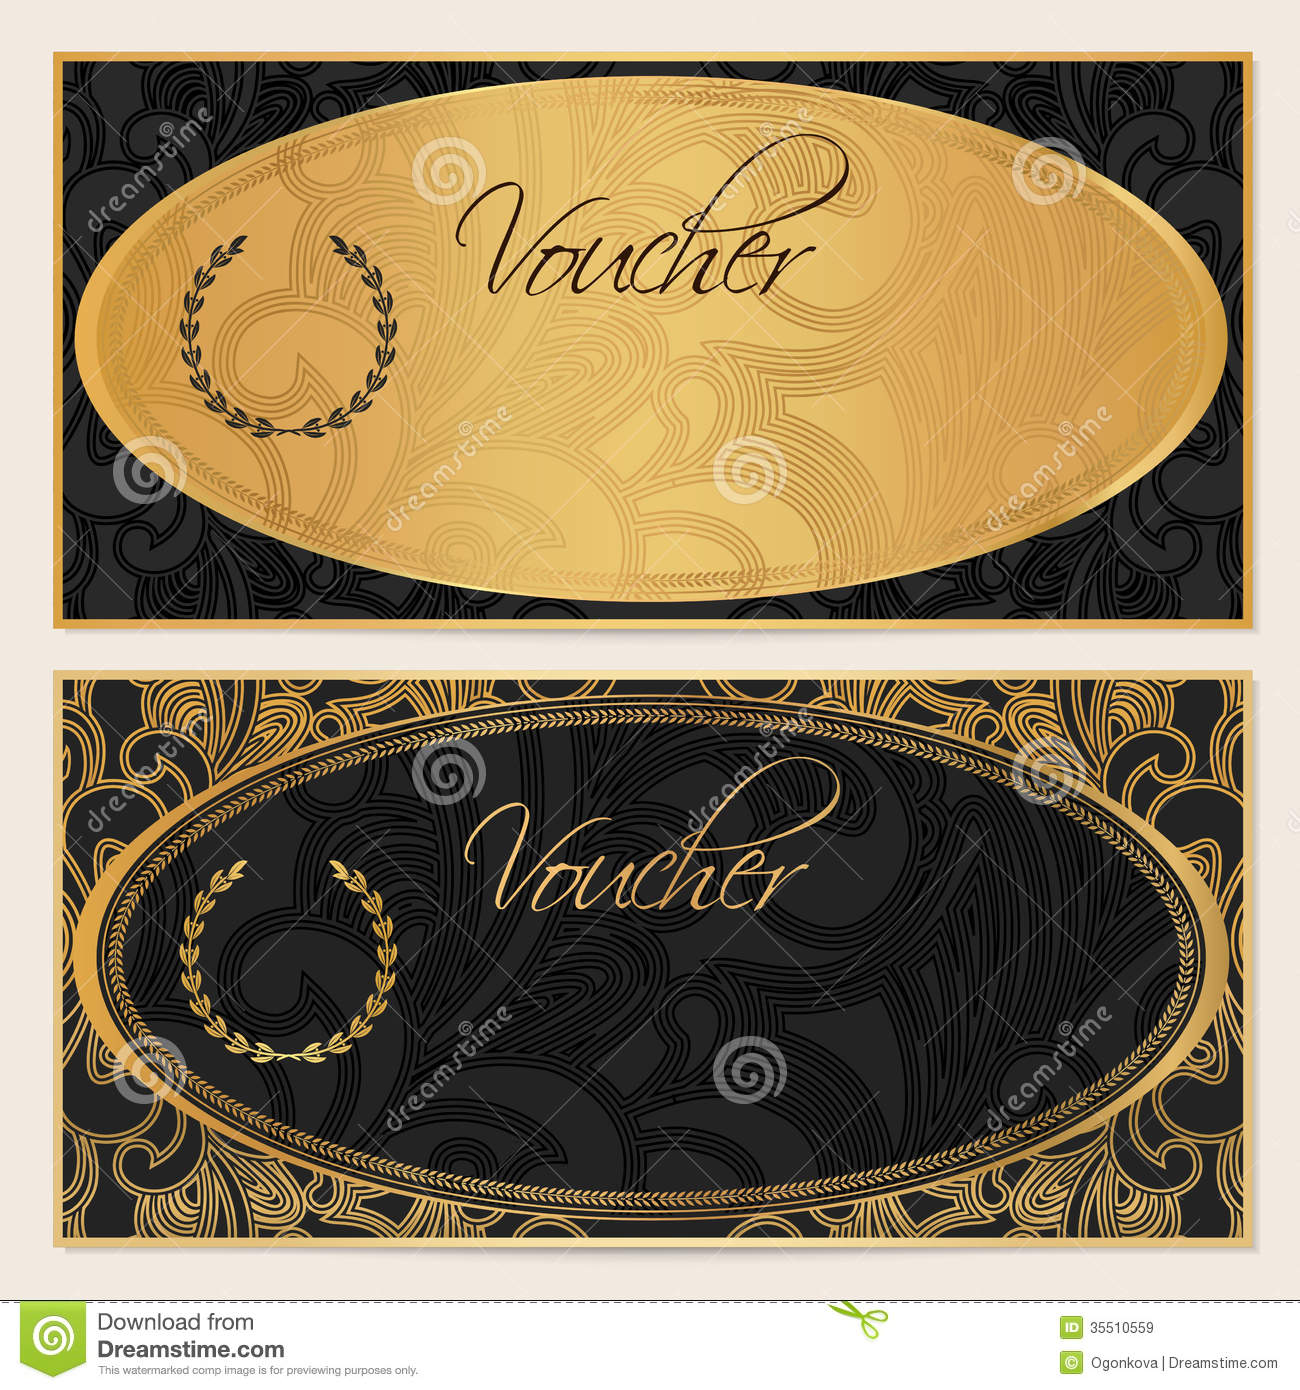 Voucher Gift Certificate Coupon Template Black Royalty Free – Ticket Voucher Template